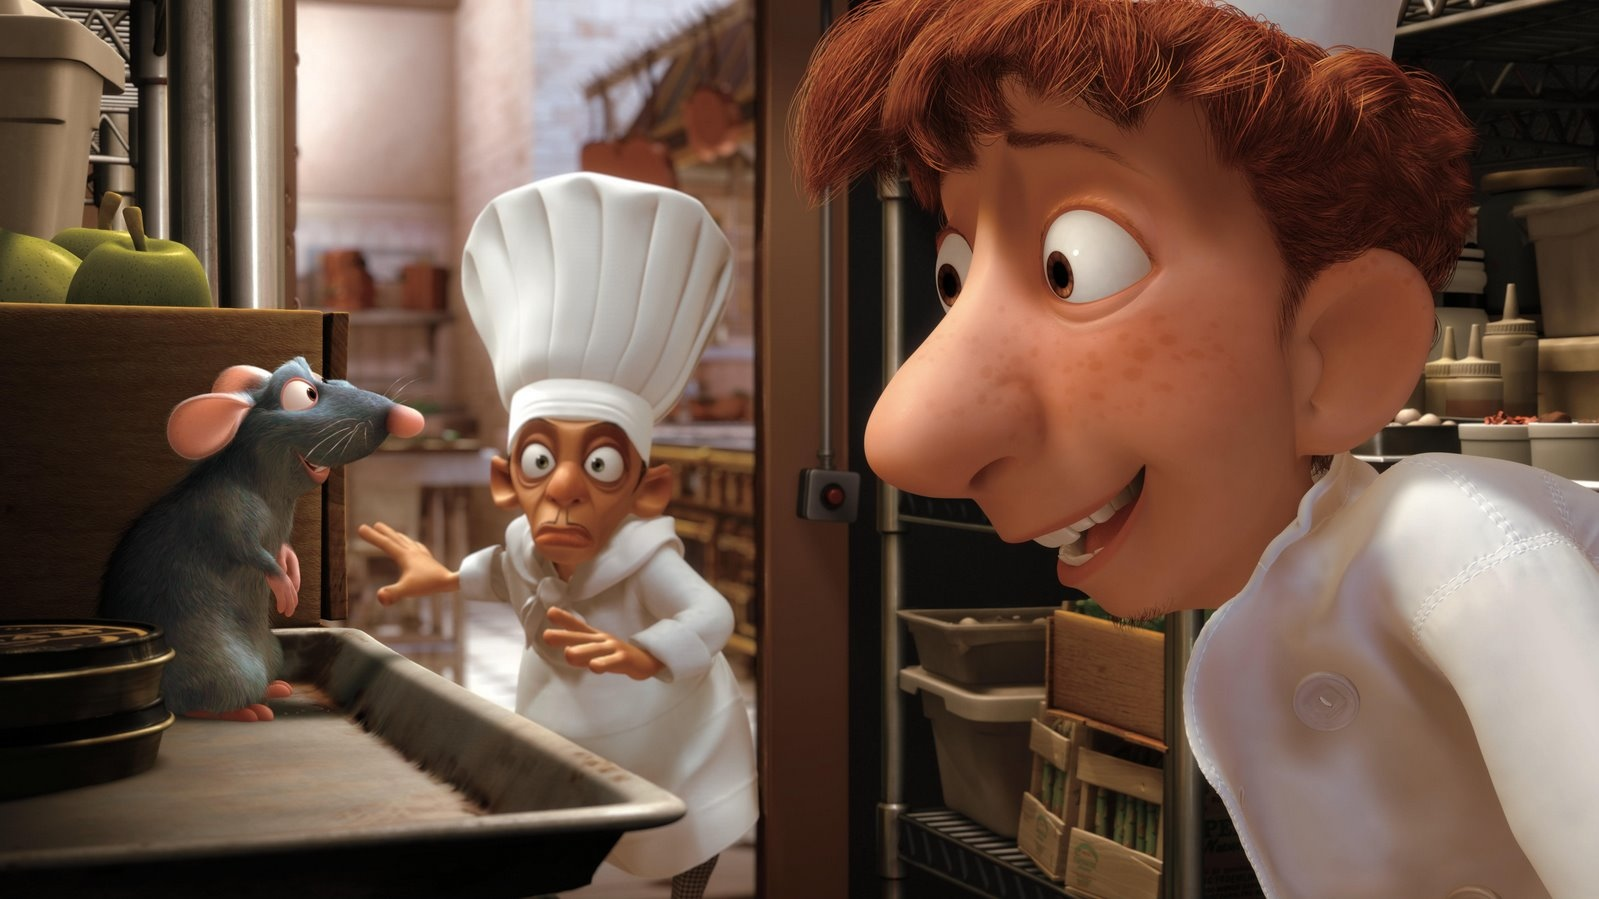 But I swear, I never saw her before.... oh wait, that awful chef dude is coming...